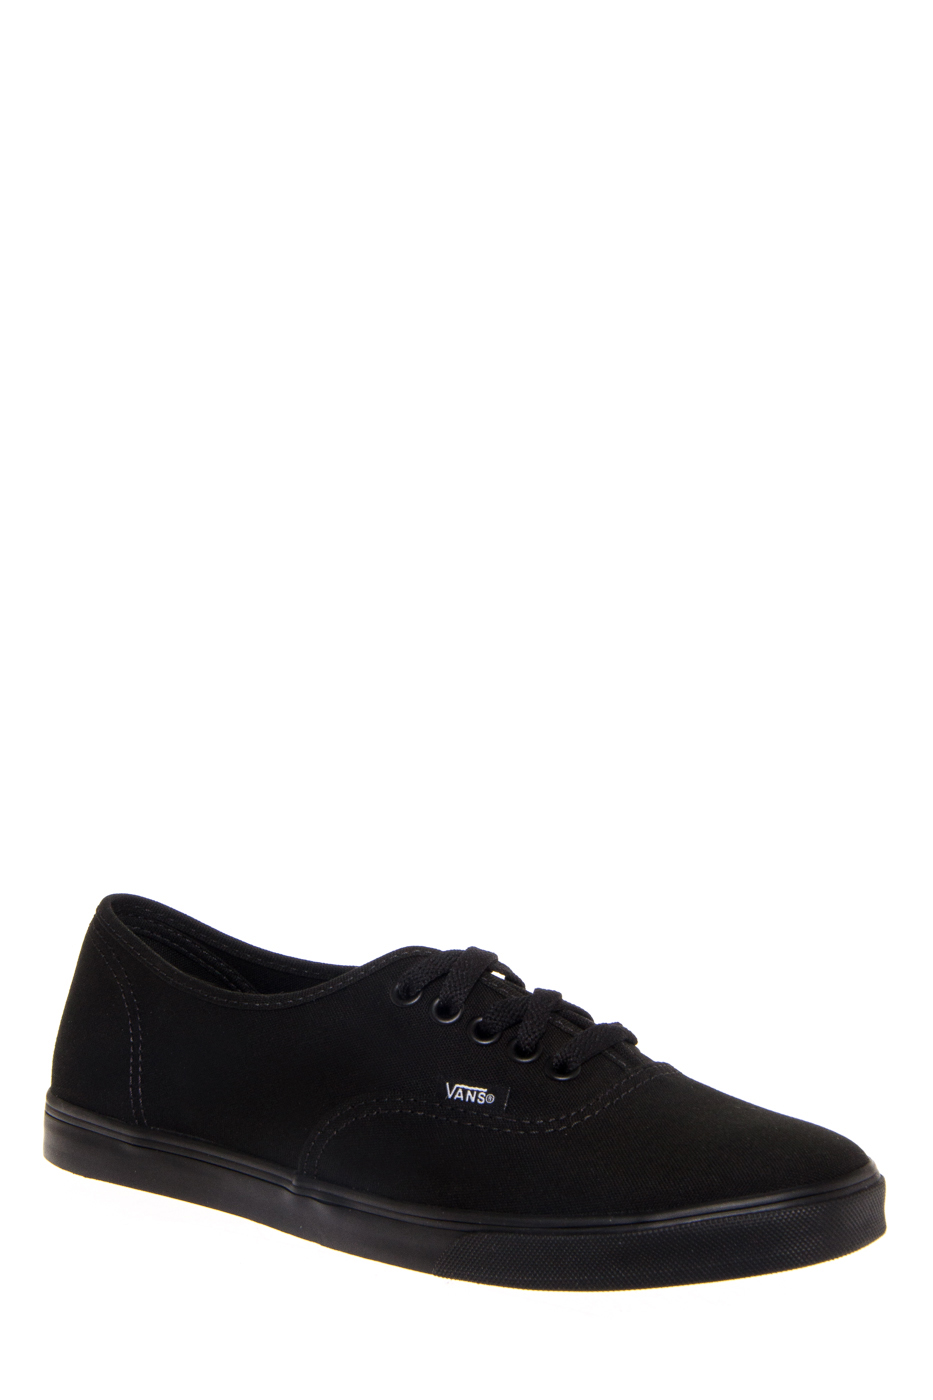 VANS Unisex Authentic Lo Pro Sneakers - Black / Black